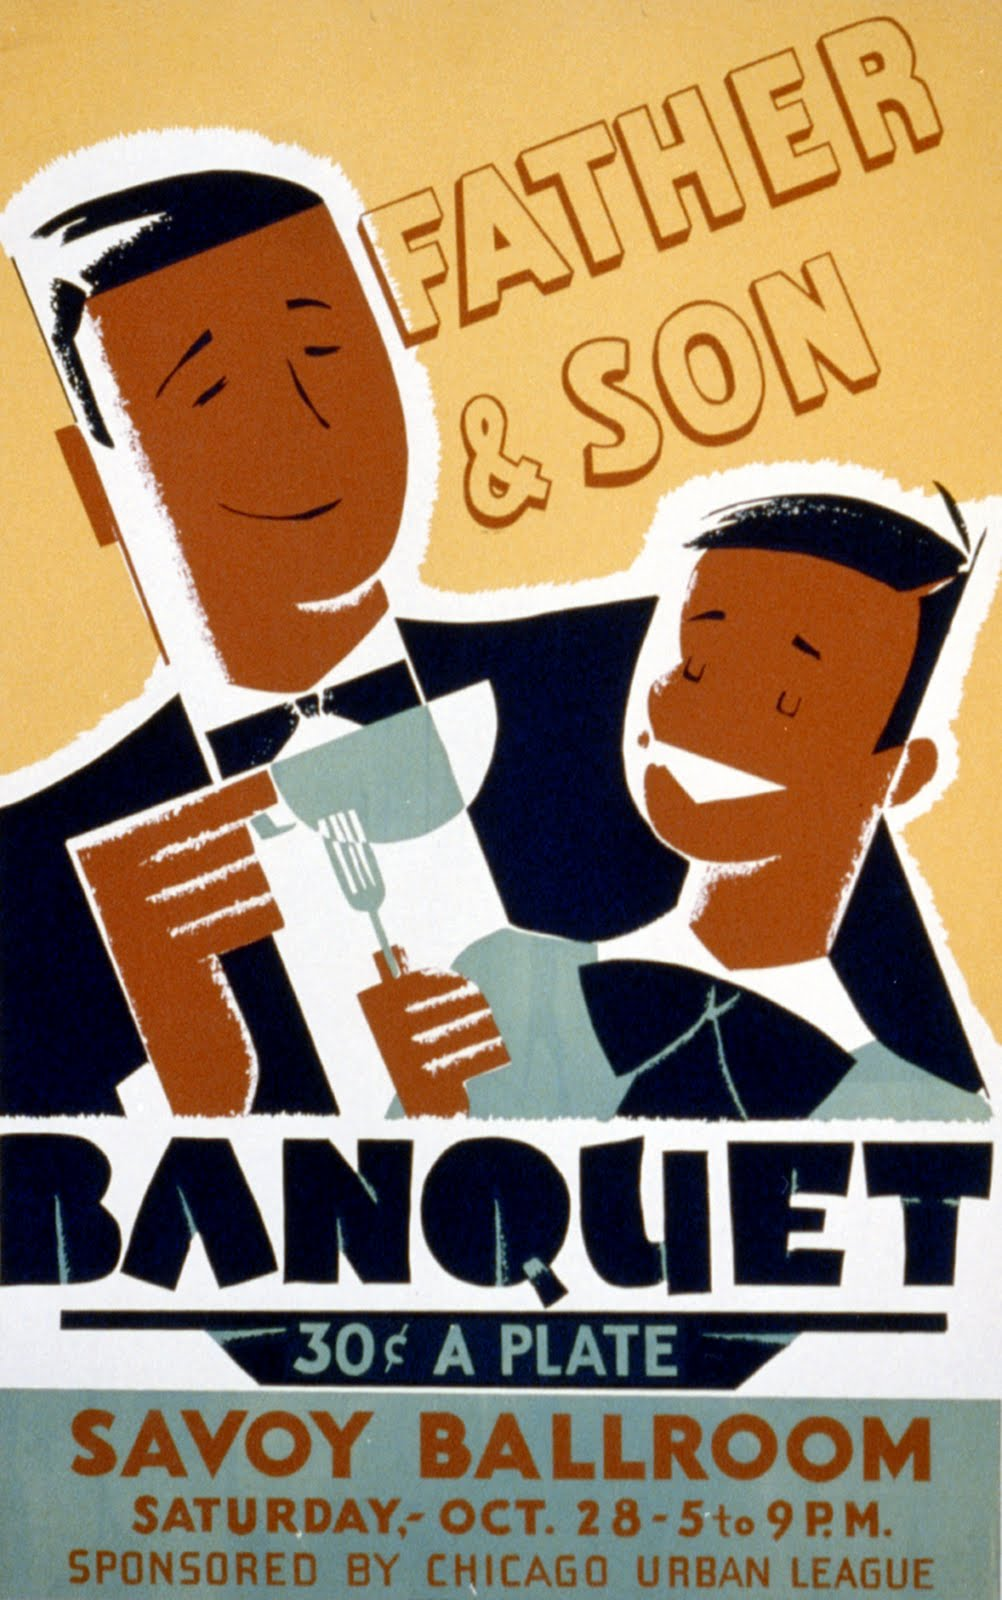 African American Father and Son Banquet Poster